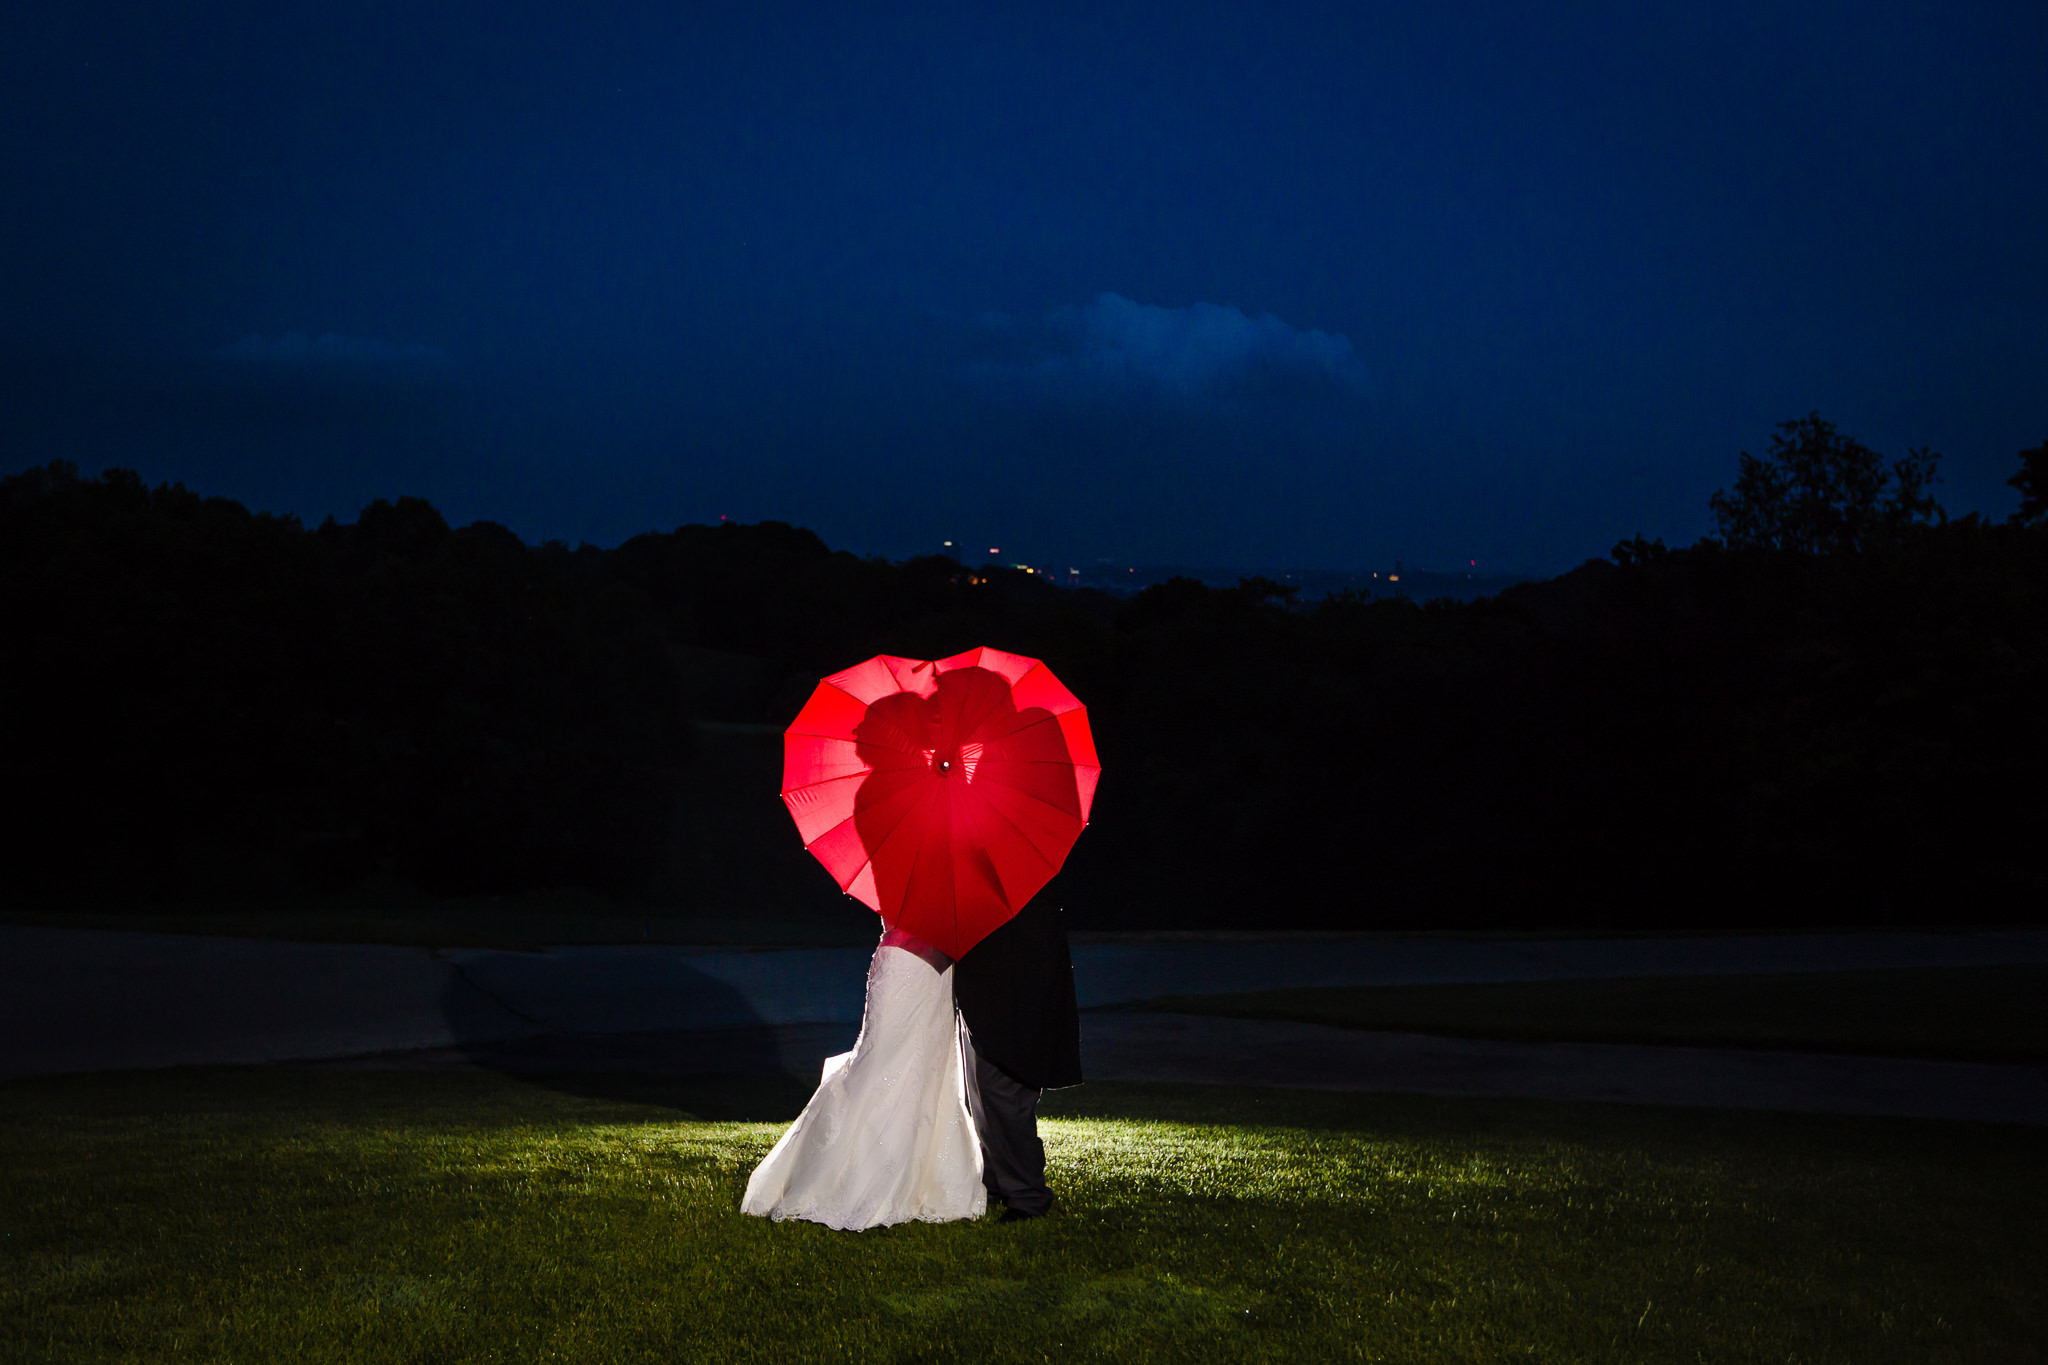 Night portrait of bride & groom with heart-shaped umbrella at Shannopin Country Club